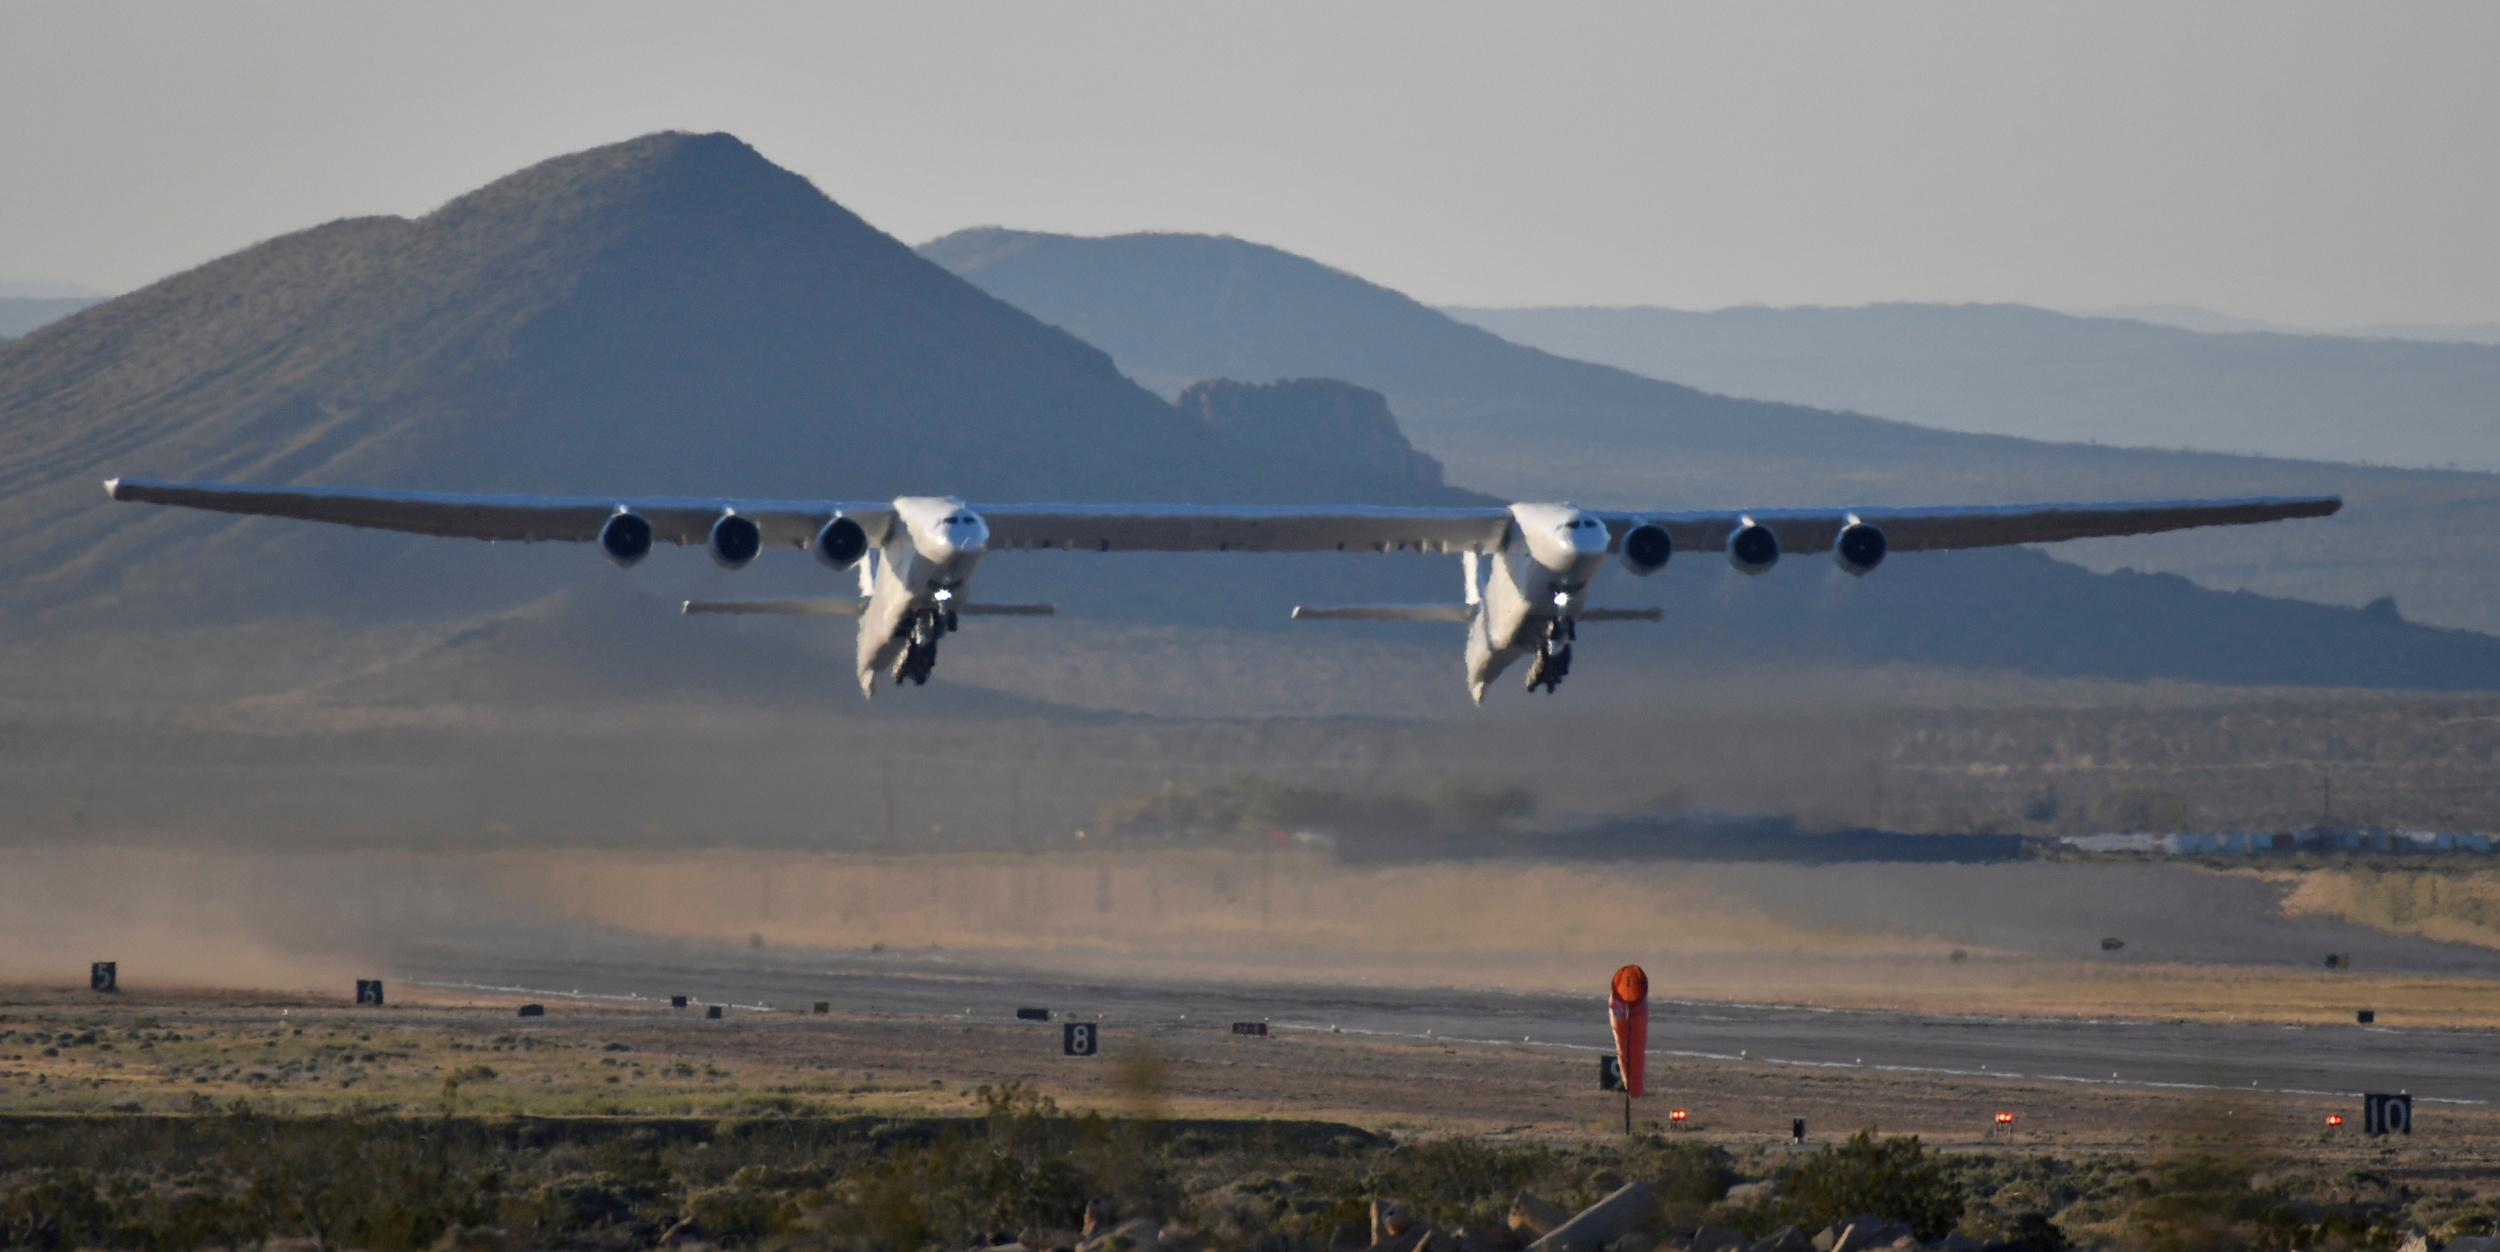 The world's largest airplane, built by the late Paul Allen's company Stratolaunch Systems, takes off on its first test flight in Mojave, California, U.S. April 13, 2019.  REUTERS/Gene Blevins